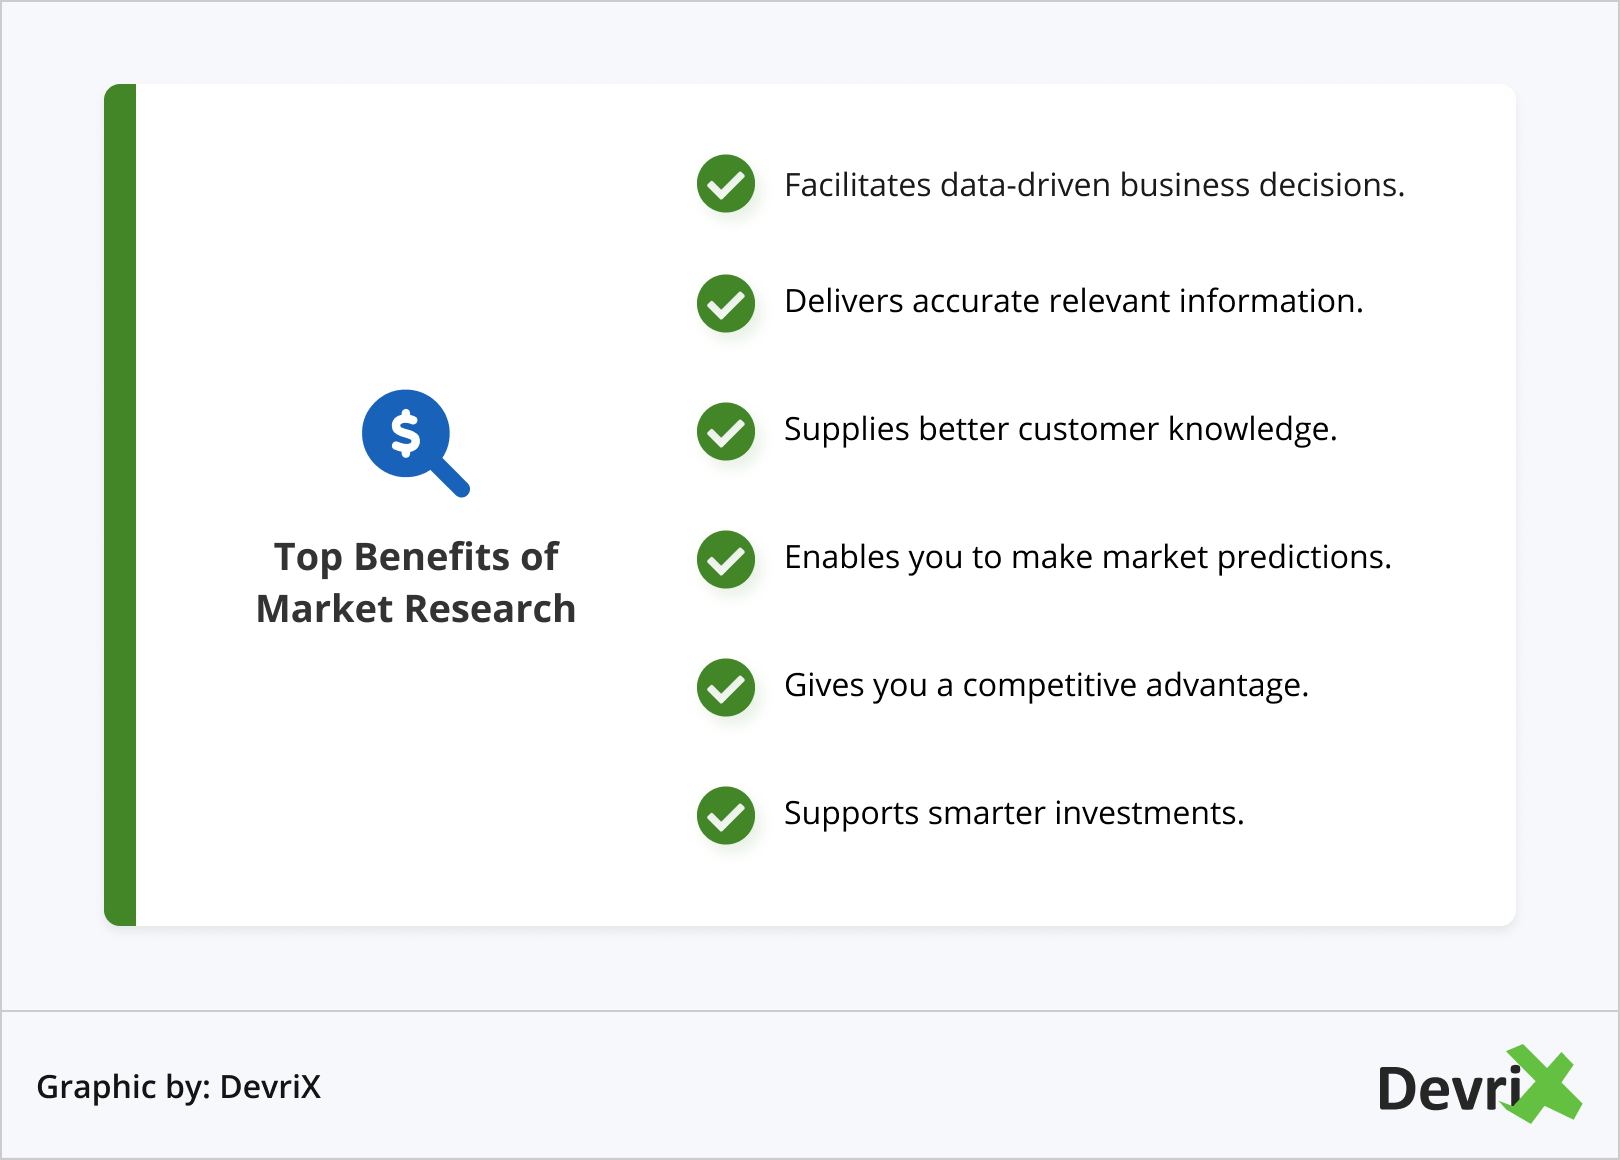 Top Benefits of Market Research